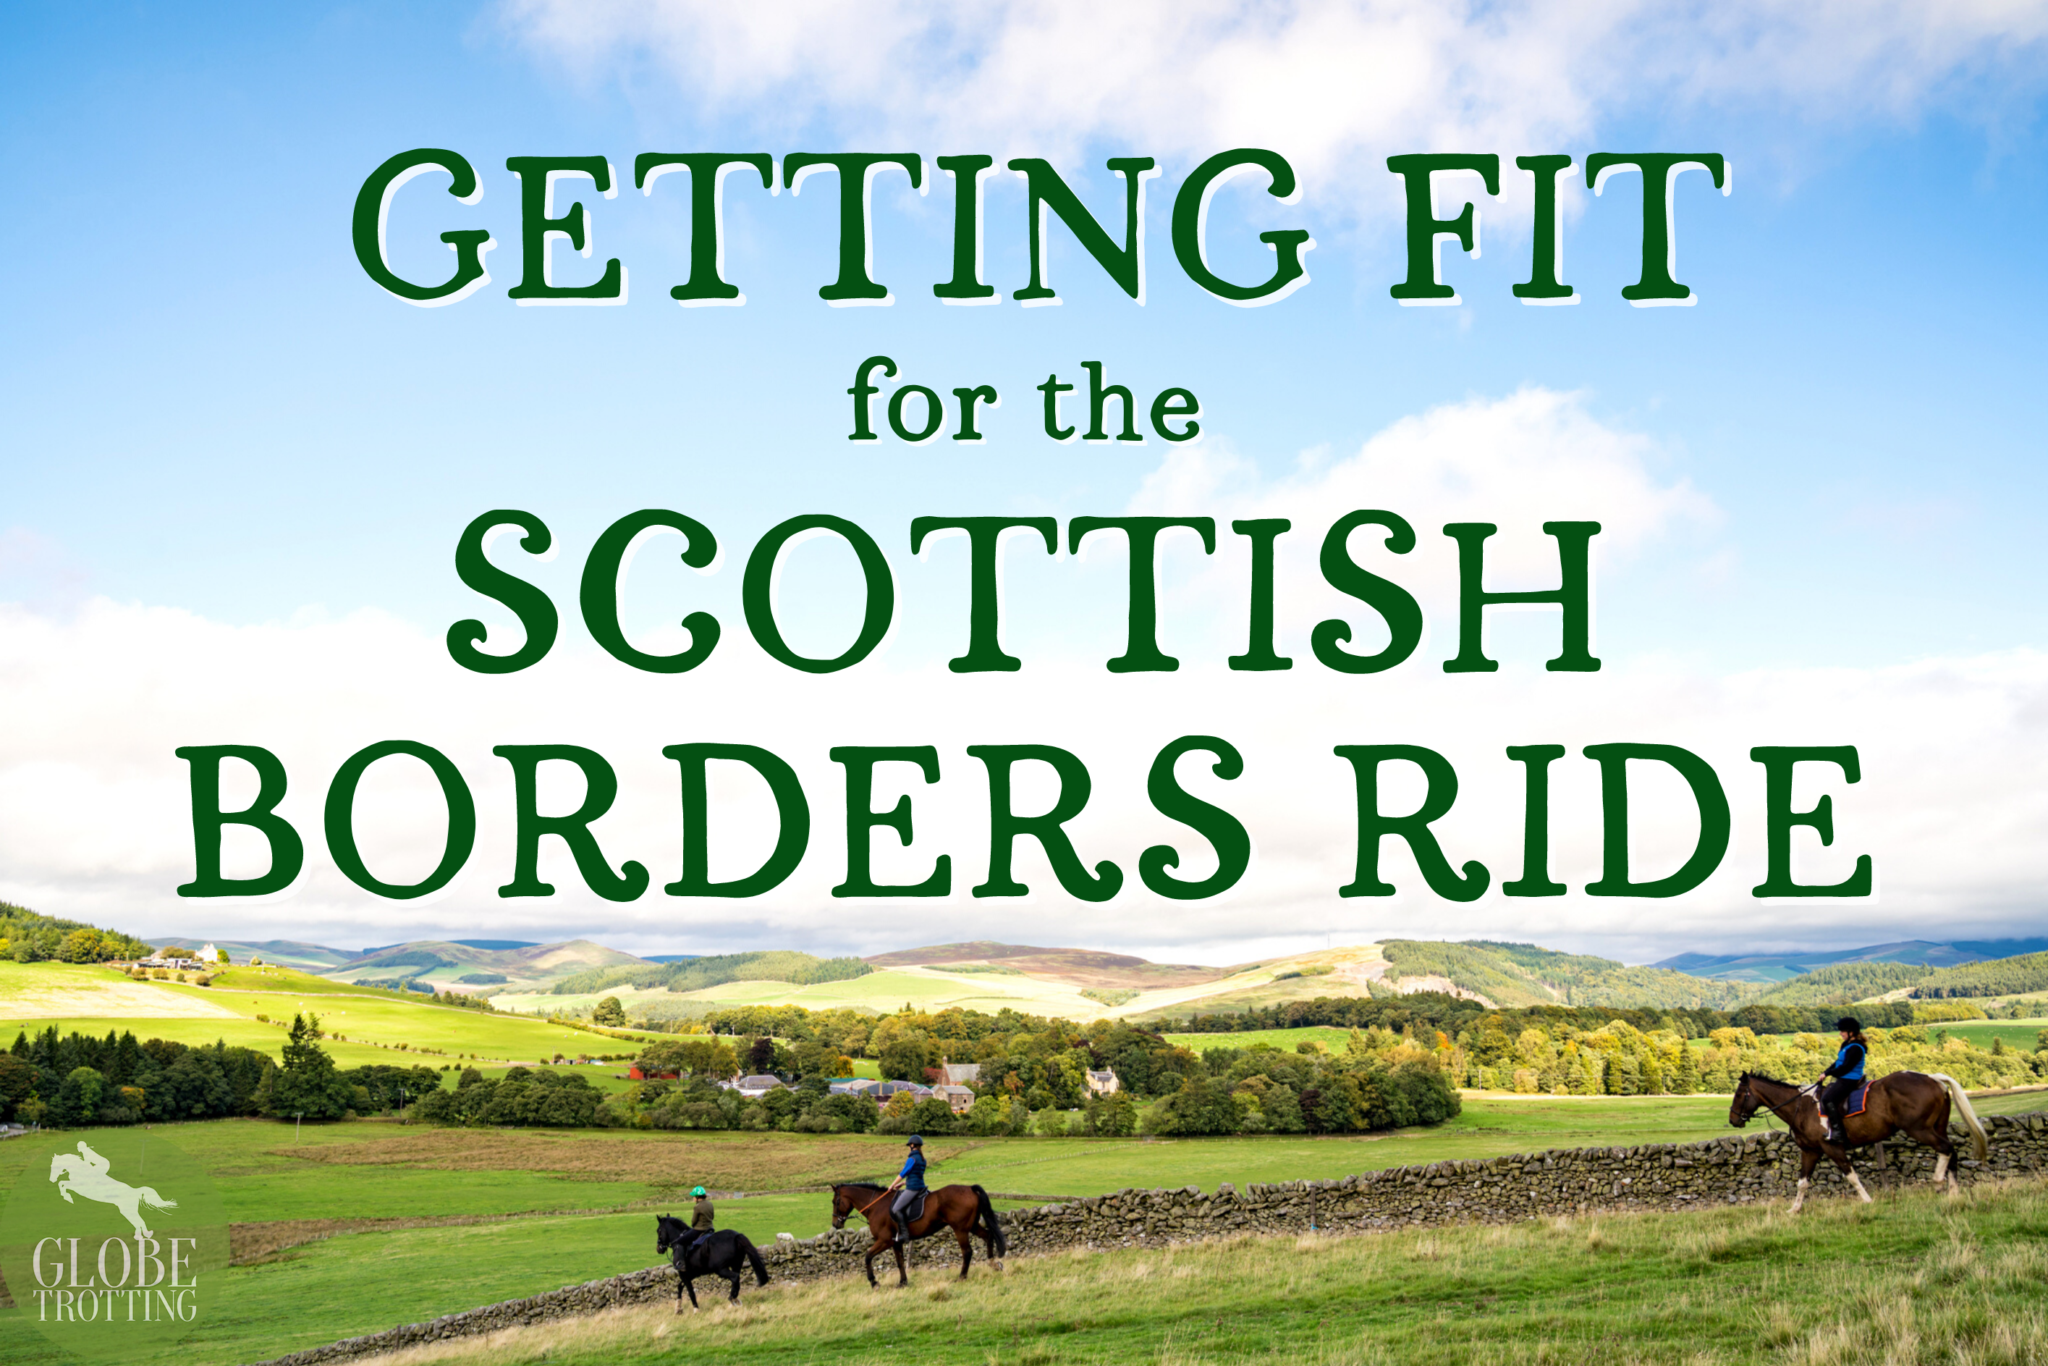 Getting Fit for the Scottish Borders Ride - Globetrotting horse riding holidays